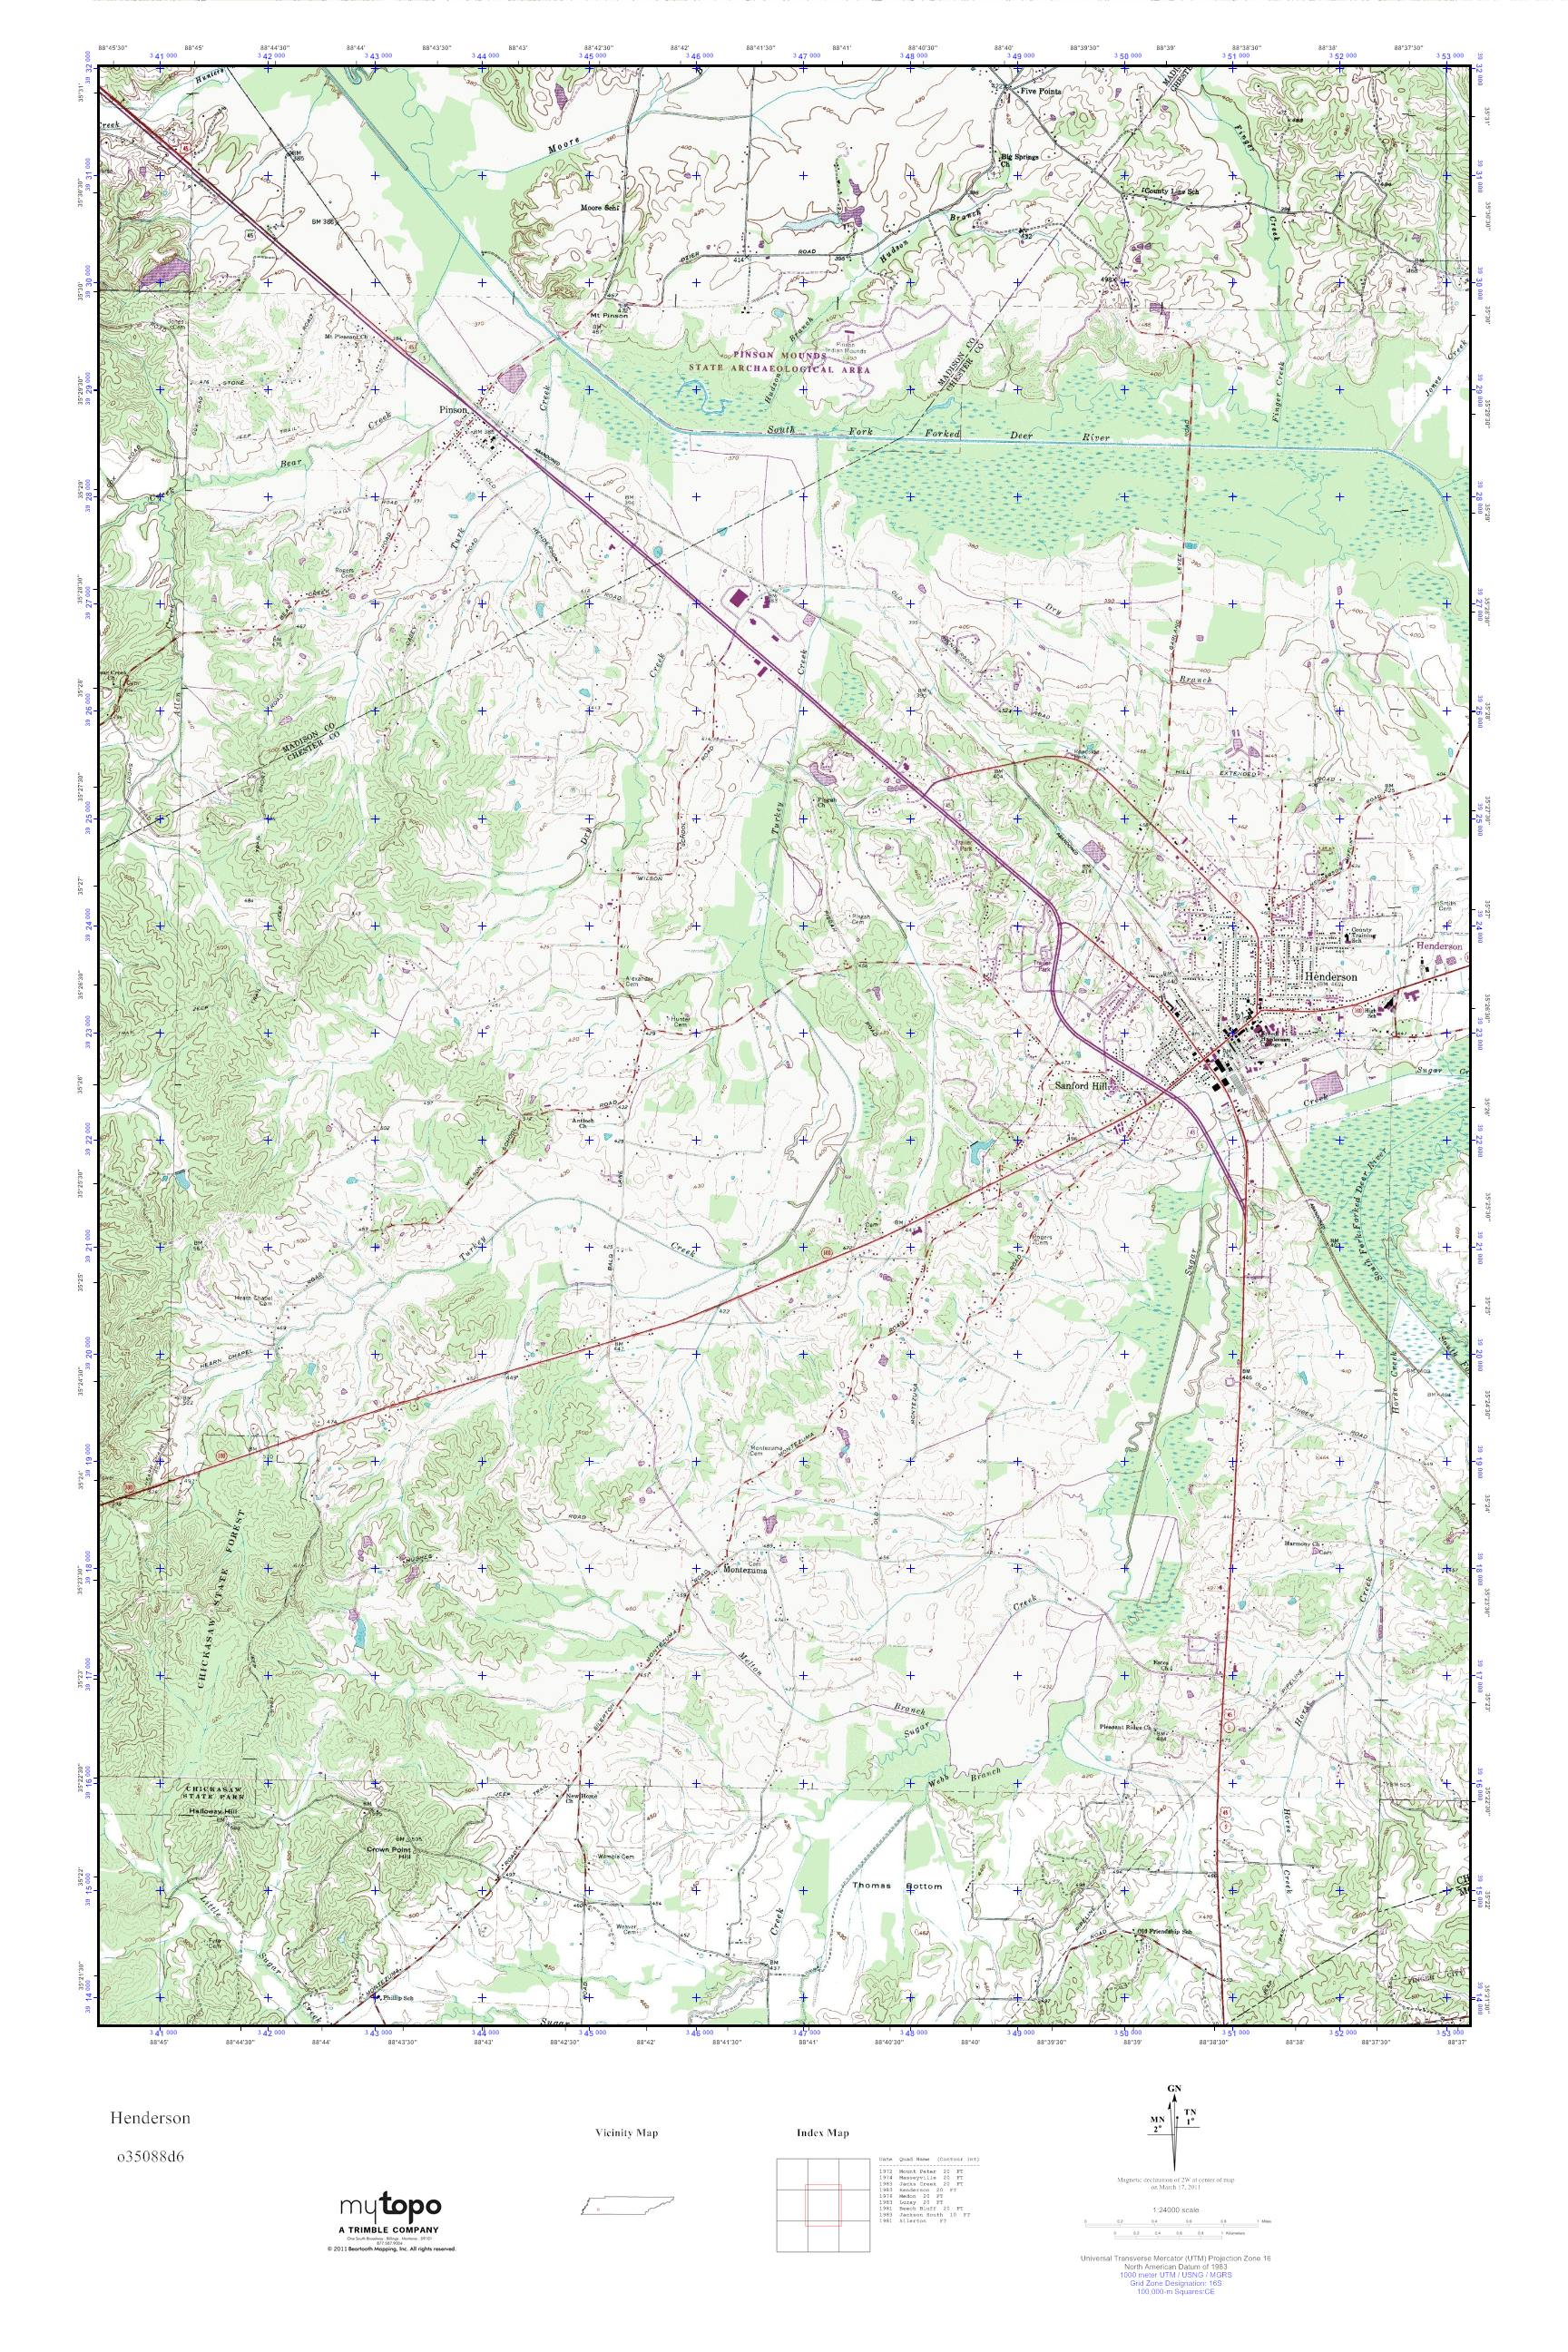 Henderson Tennessee Map.Mytopo Henderson Tennessee Usgs Quad Topo Map